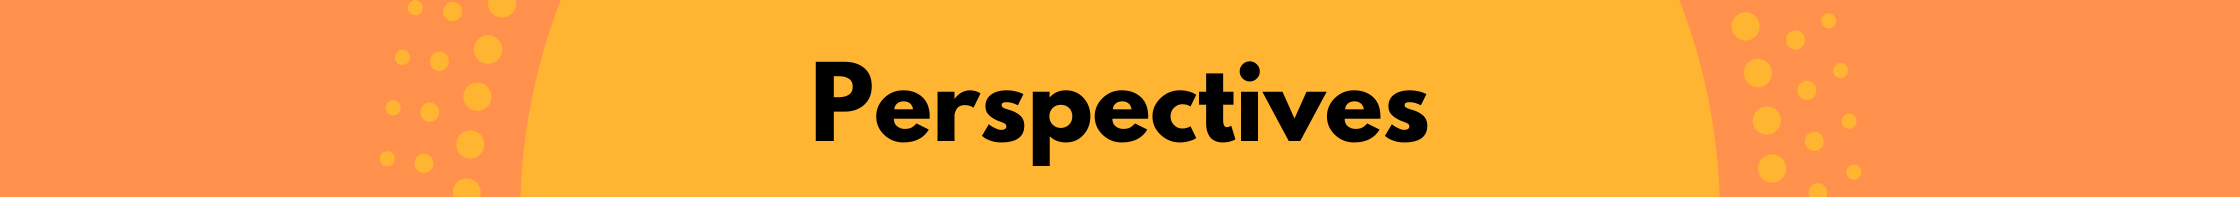 Perspectives banner